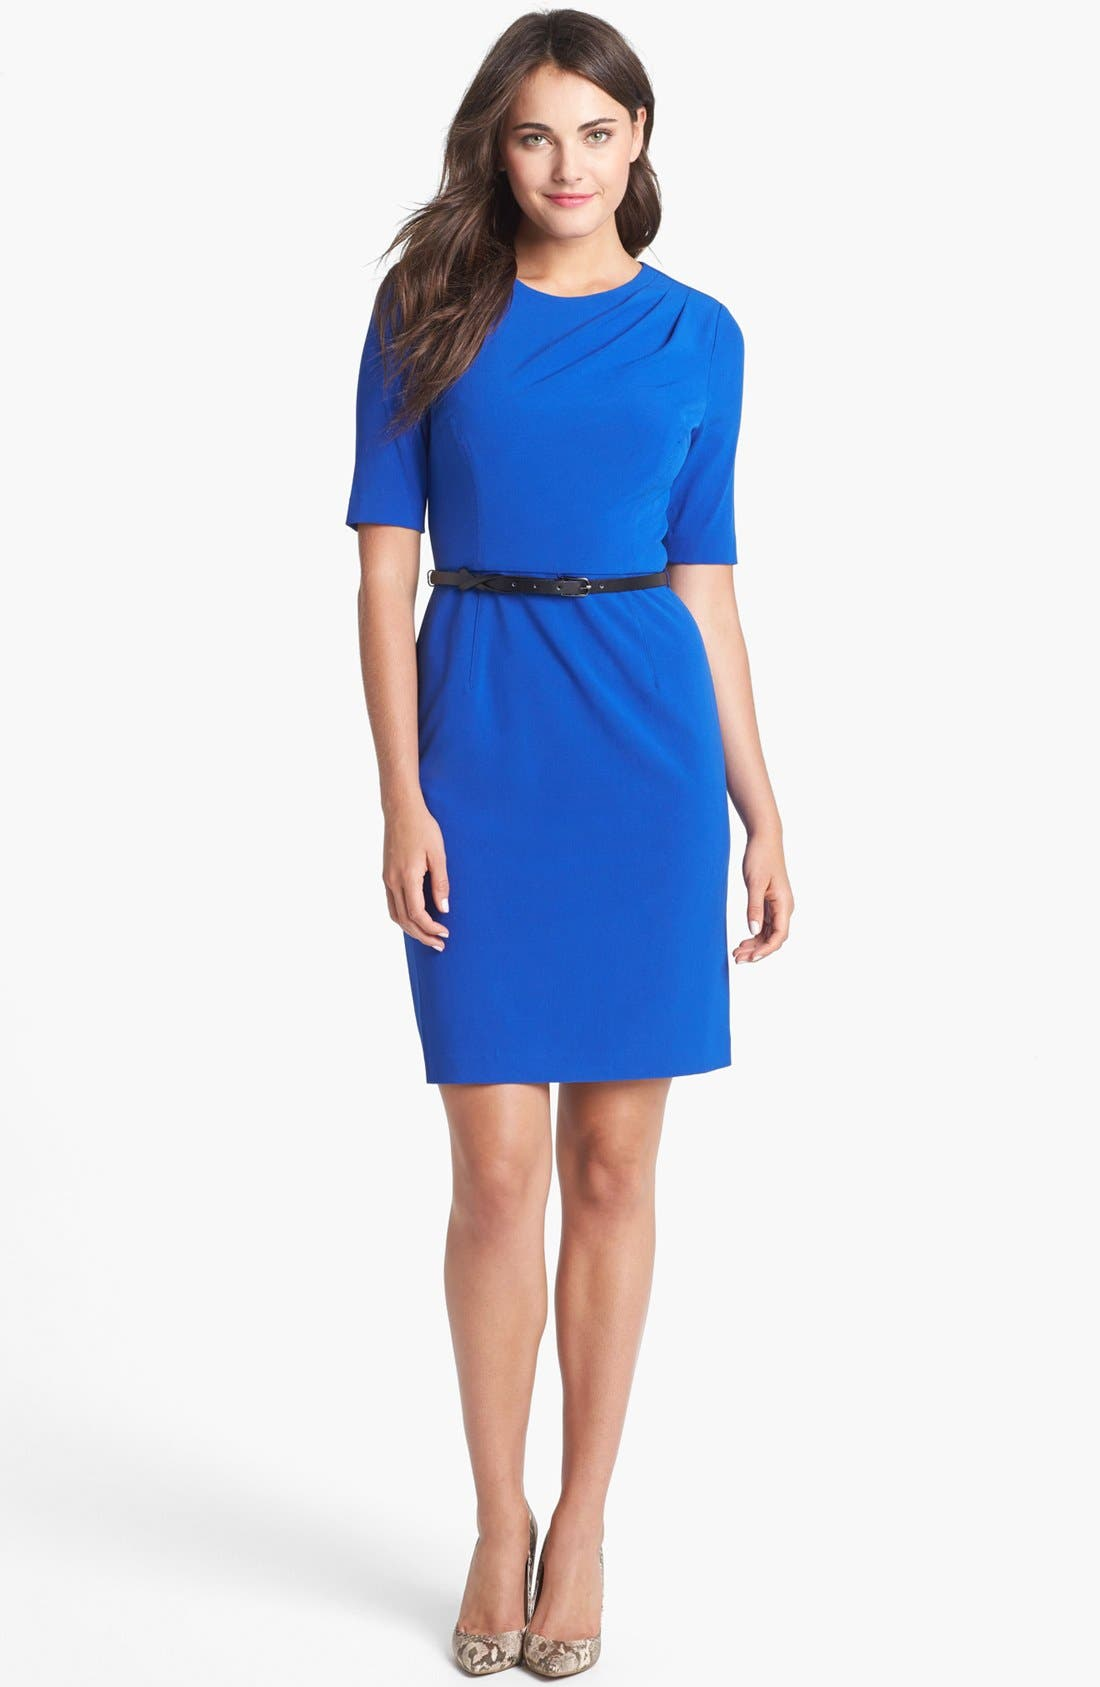 Main Image - Ivy & Blu for Maggy Boutique Sheath Dress (Petite)